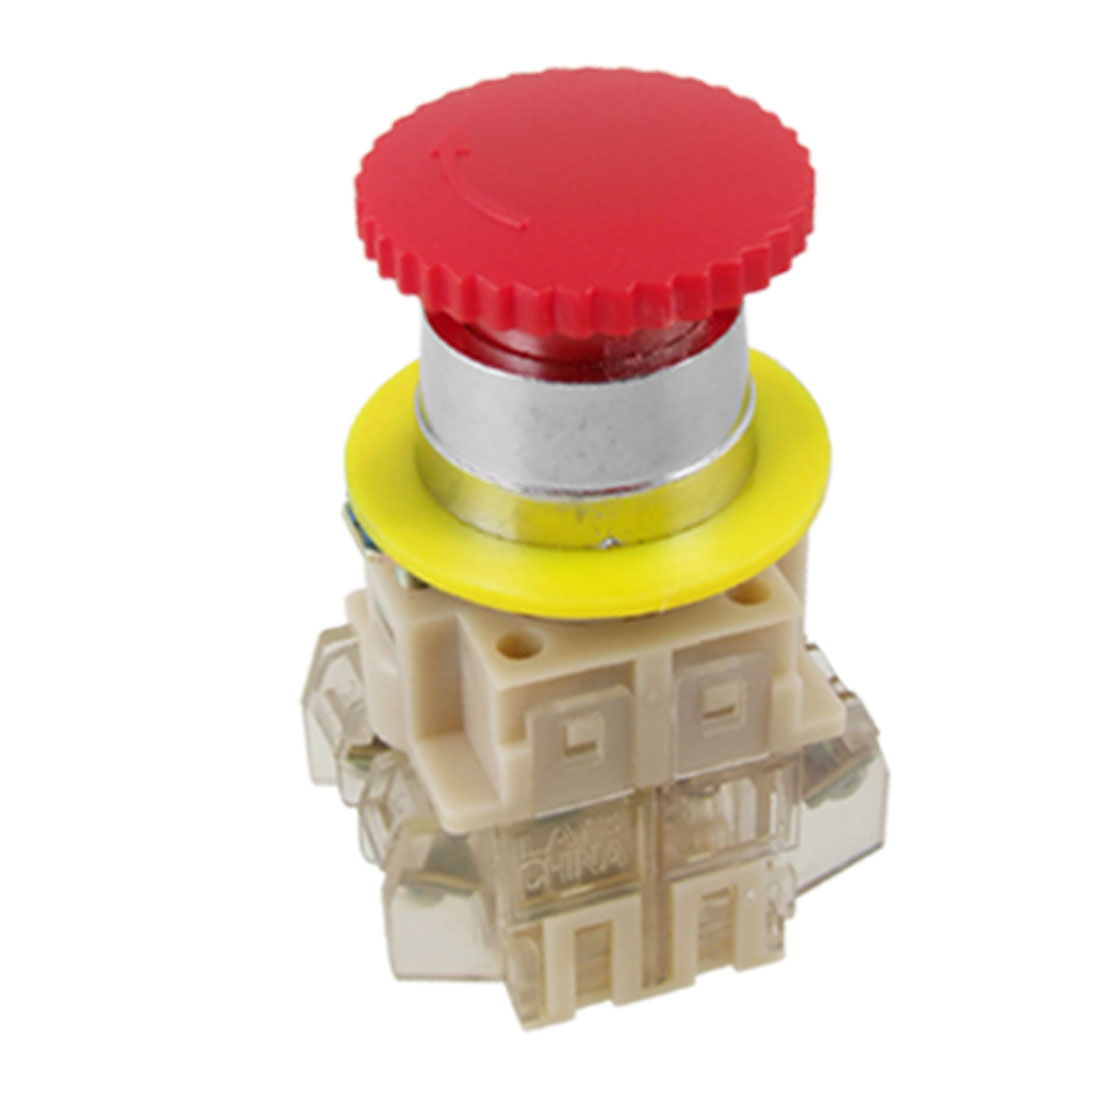 AC 660V 10A Red Sign Mushroom Emergency Stop Push Button Switch DPST 1 NO 1 NC